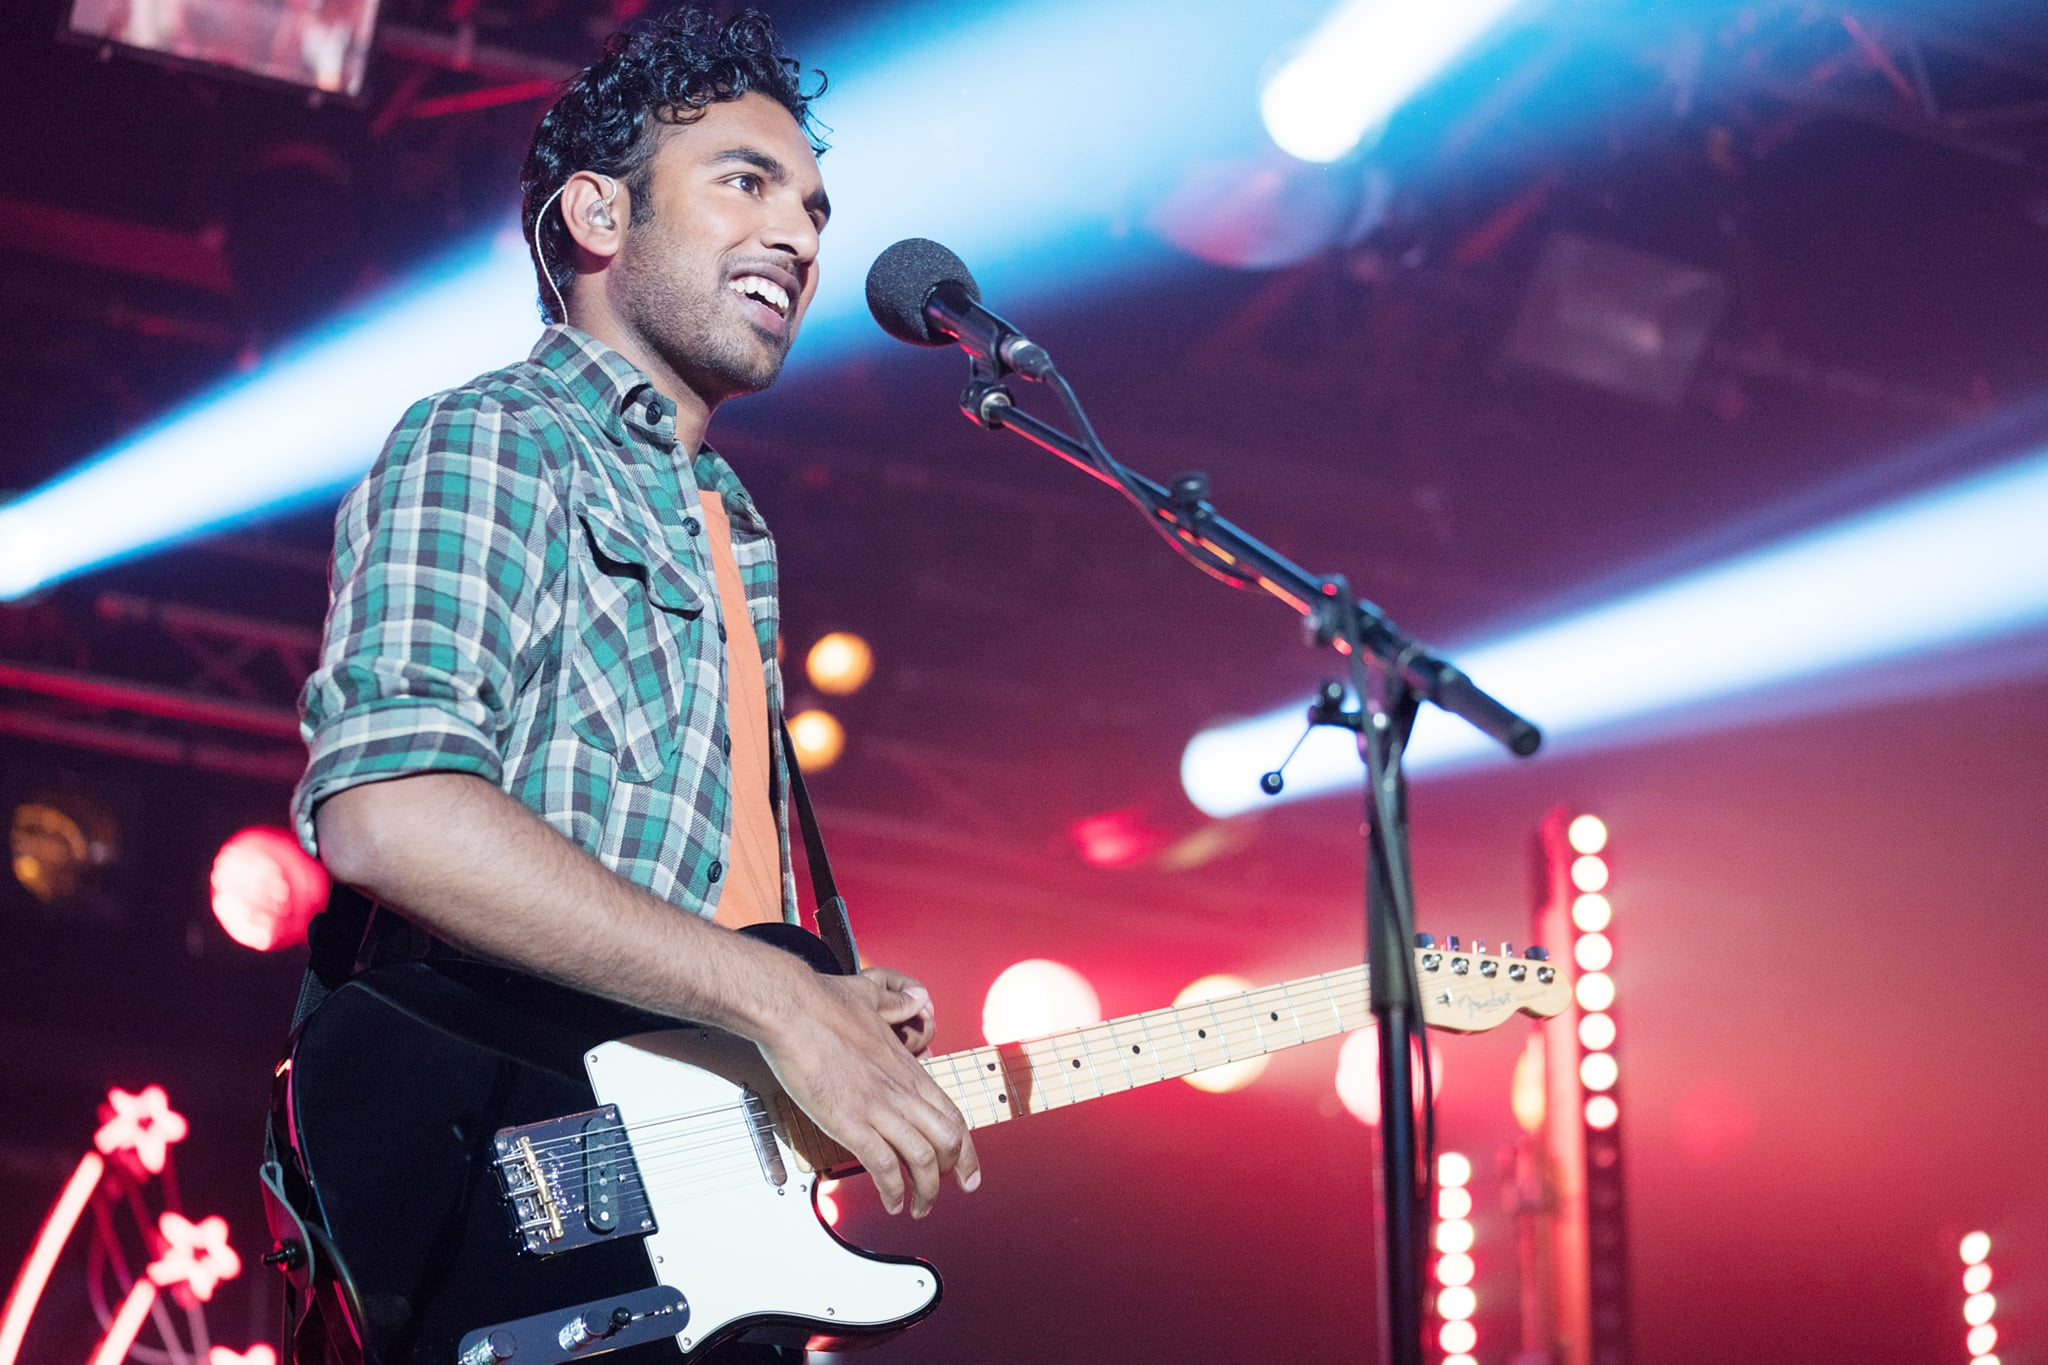 We're Swooning Over Himesh Patel's Singing Voice in Yesterday